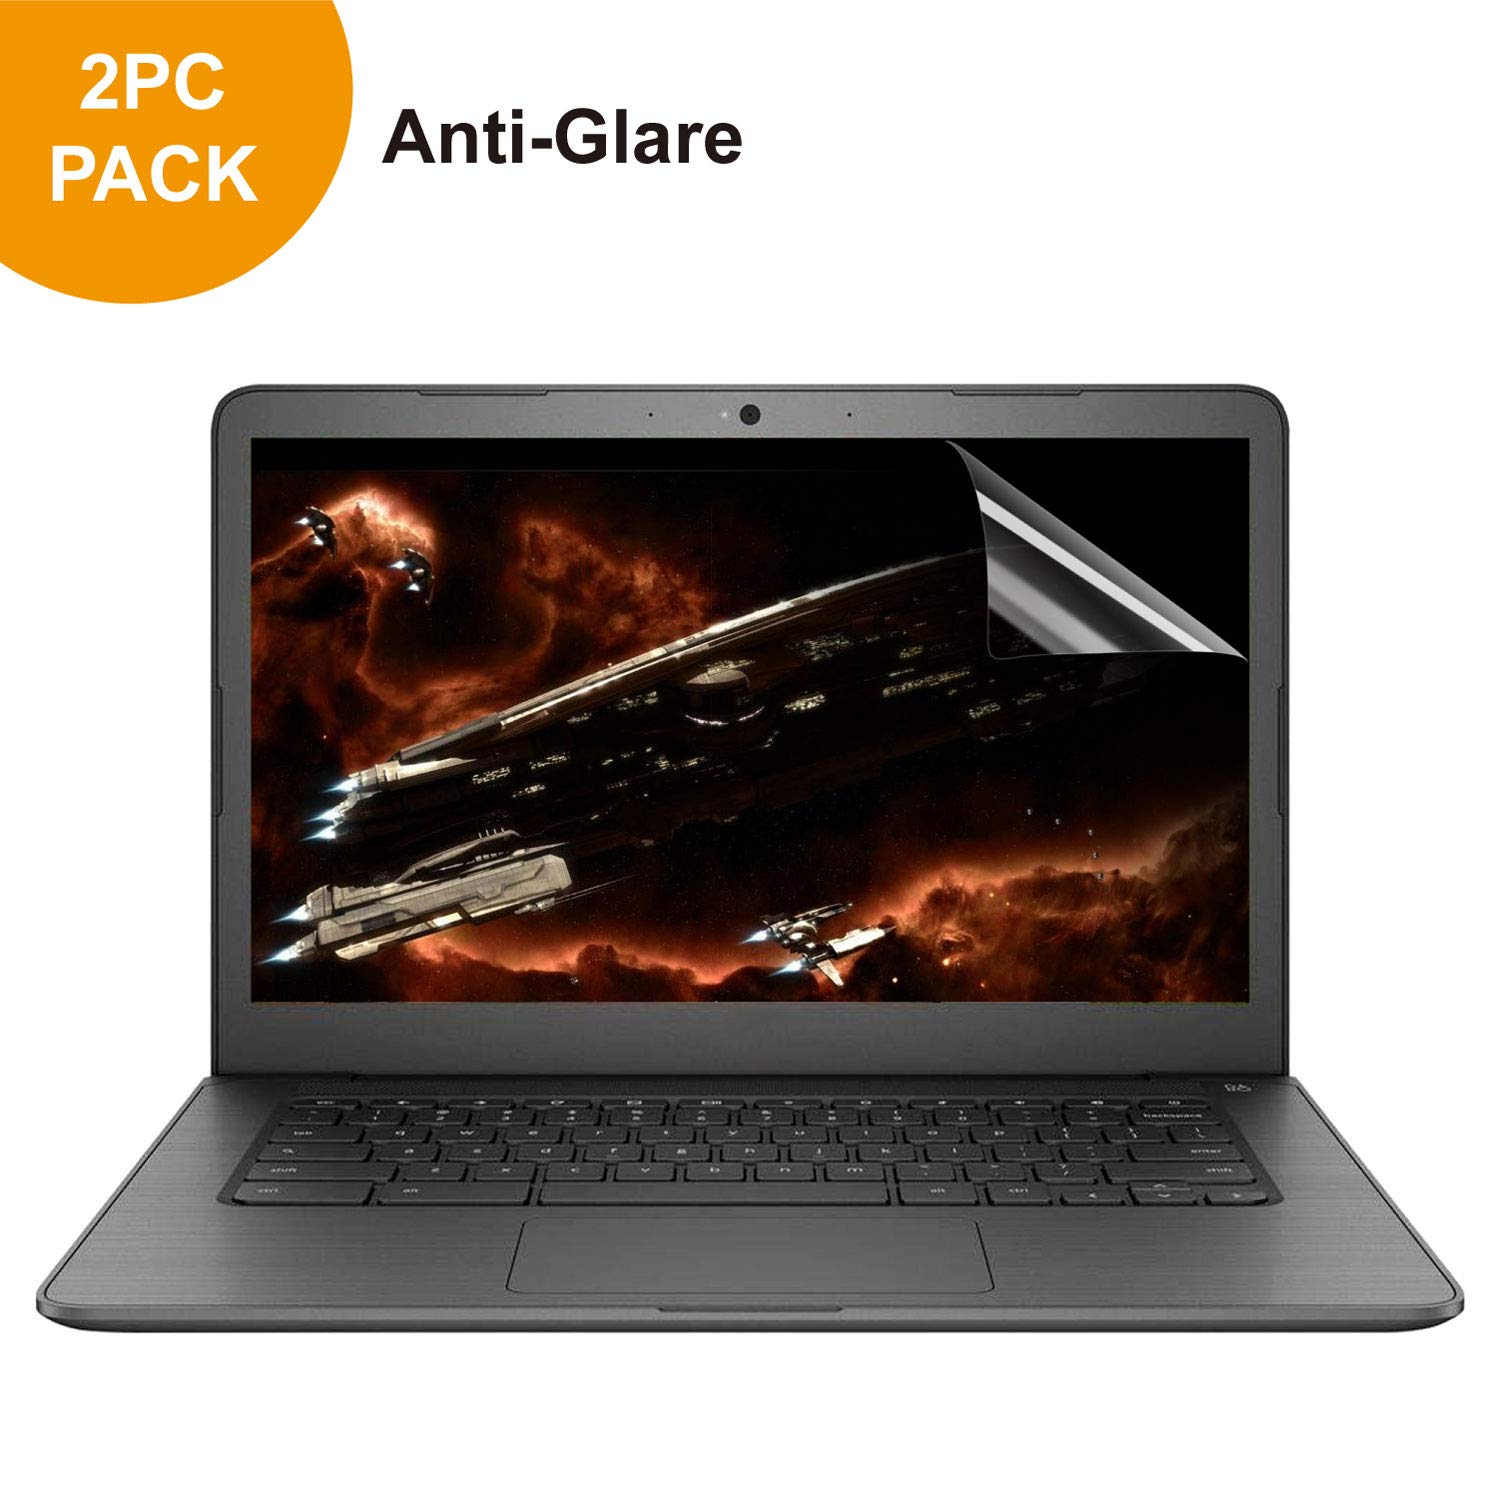 [2 Pack] 14'' Anti Glare Anti Scratch Laptop Screen Protector Compatible for 14 inch Notebook Computer Screen Display 16:9 by Gold-Pai